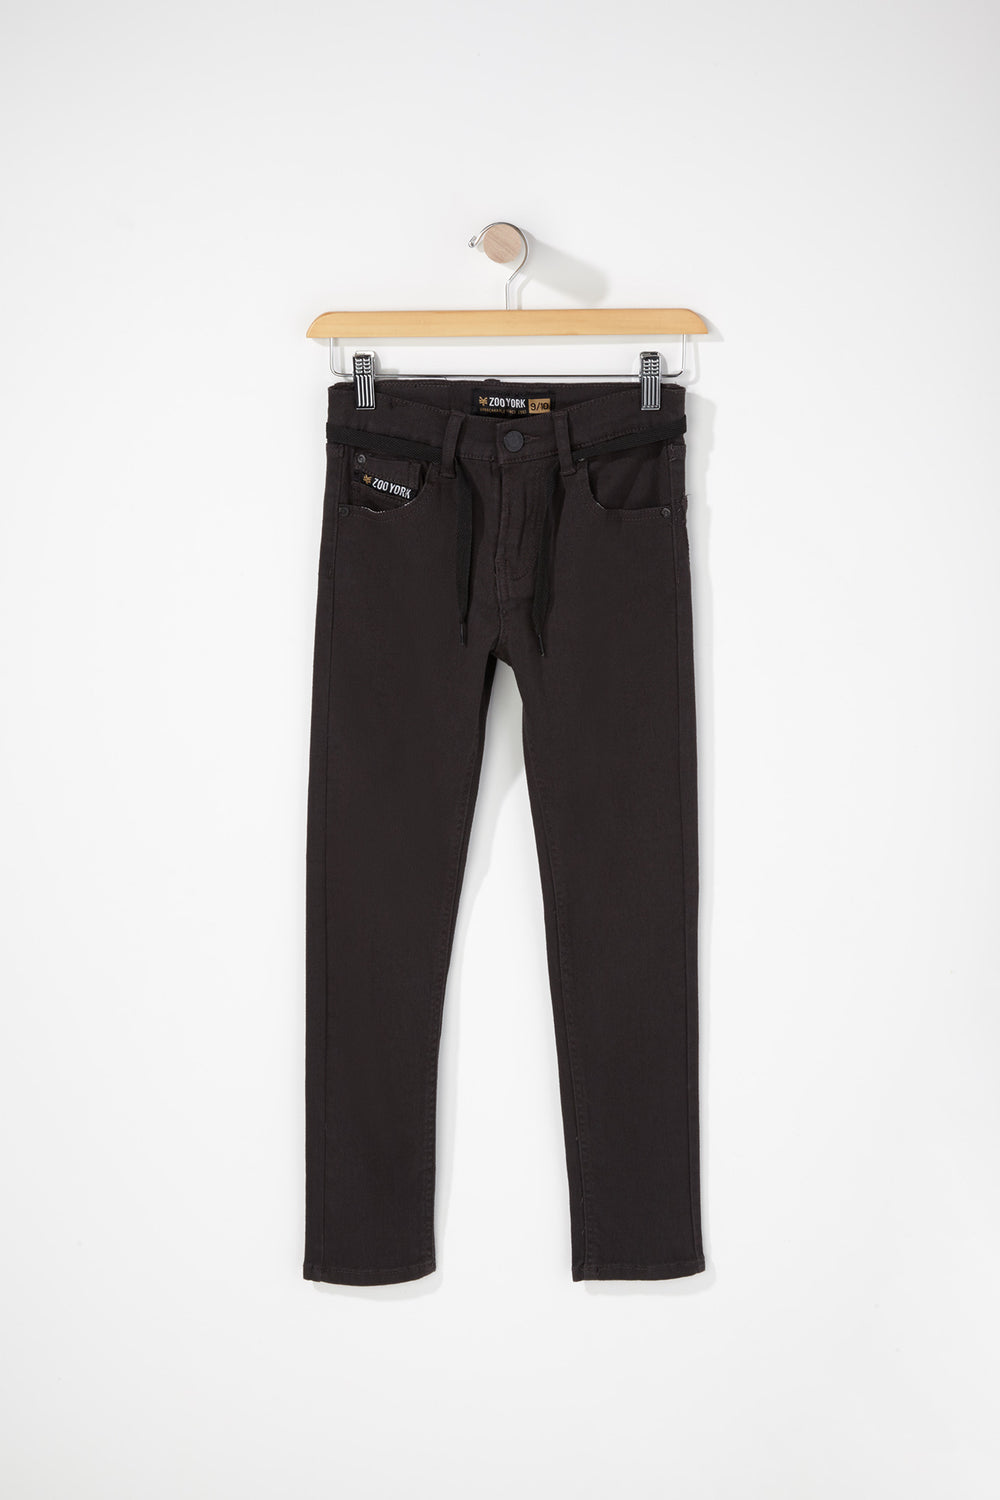 Zoo York Youth Stretch Skinny Jeans Dark Grey